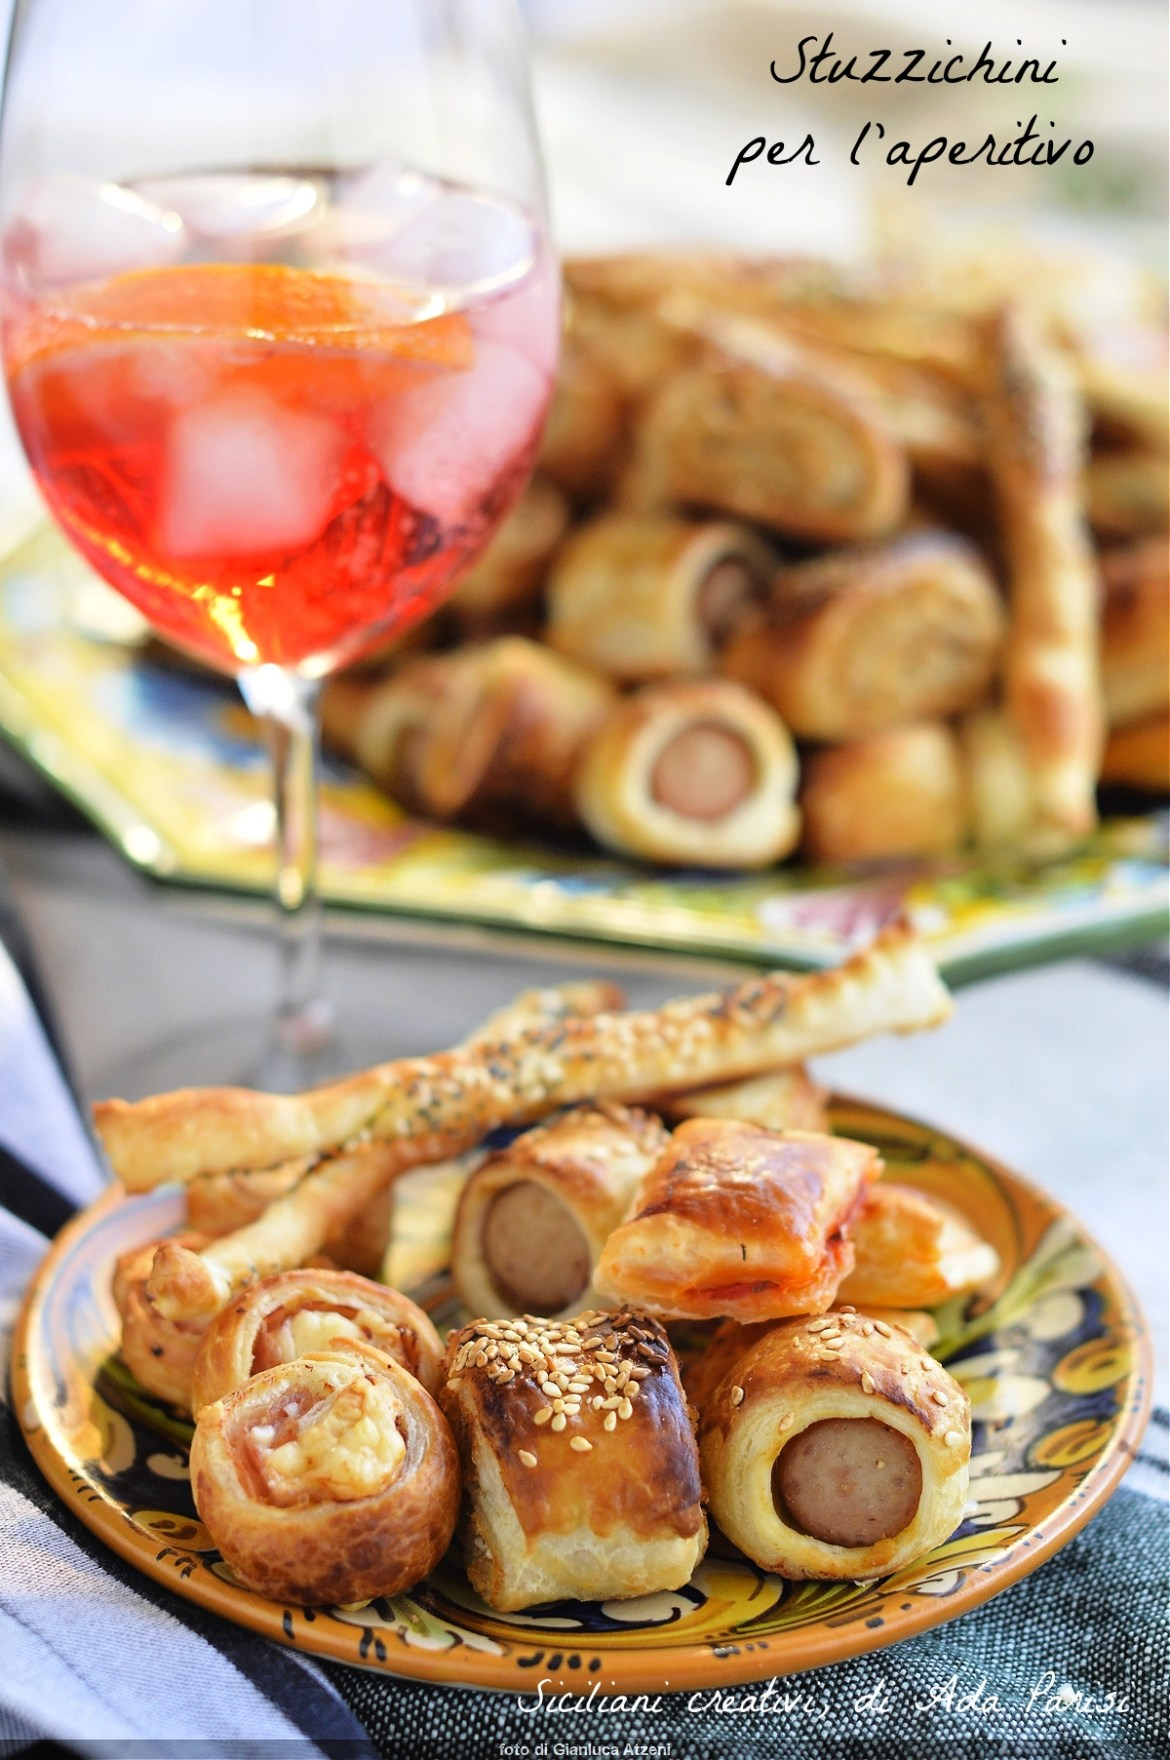 Appetizers for the aperitif: 5 very easy recipes